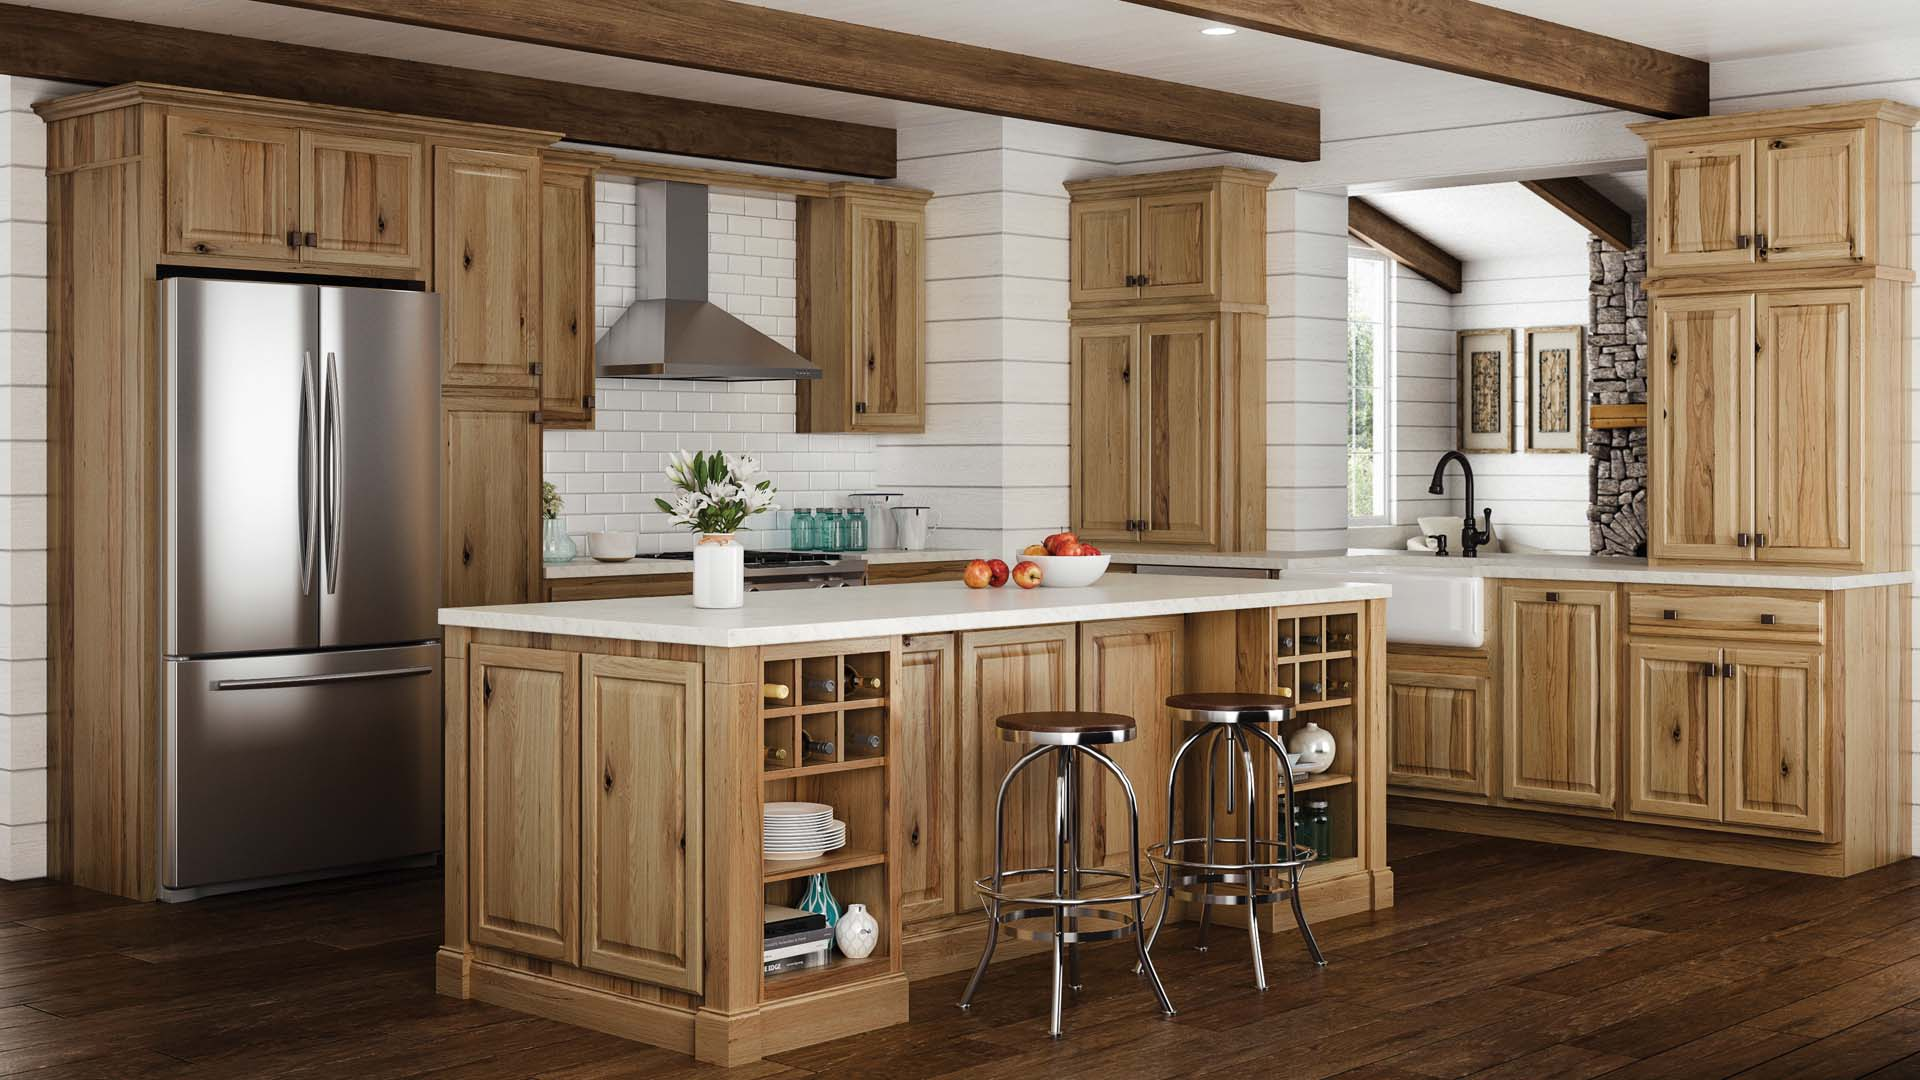 The Home Depot Kitchen Cabinets Hampton Wall Kitchen Cabinets In Natural Hickory Kitchen The